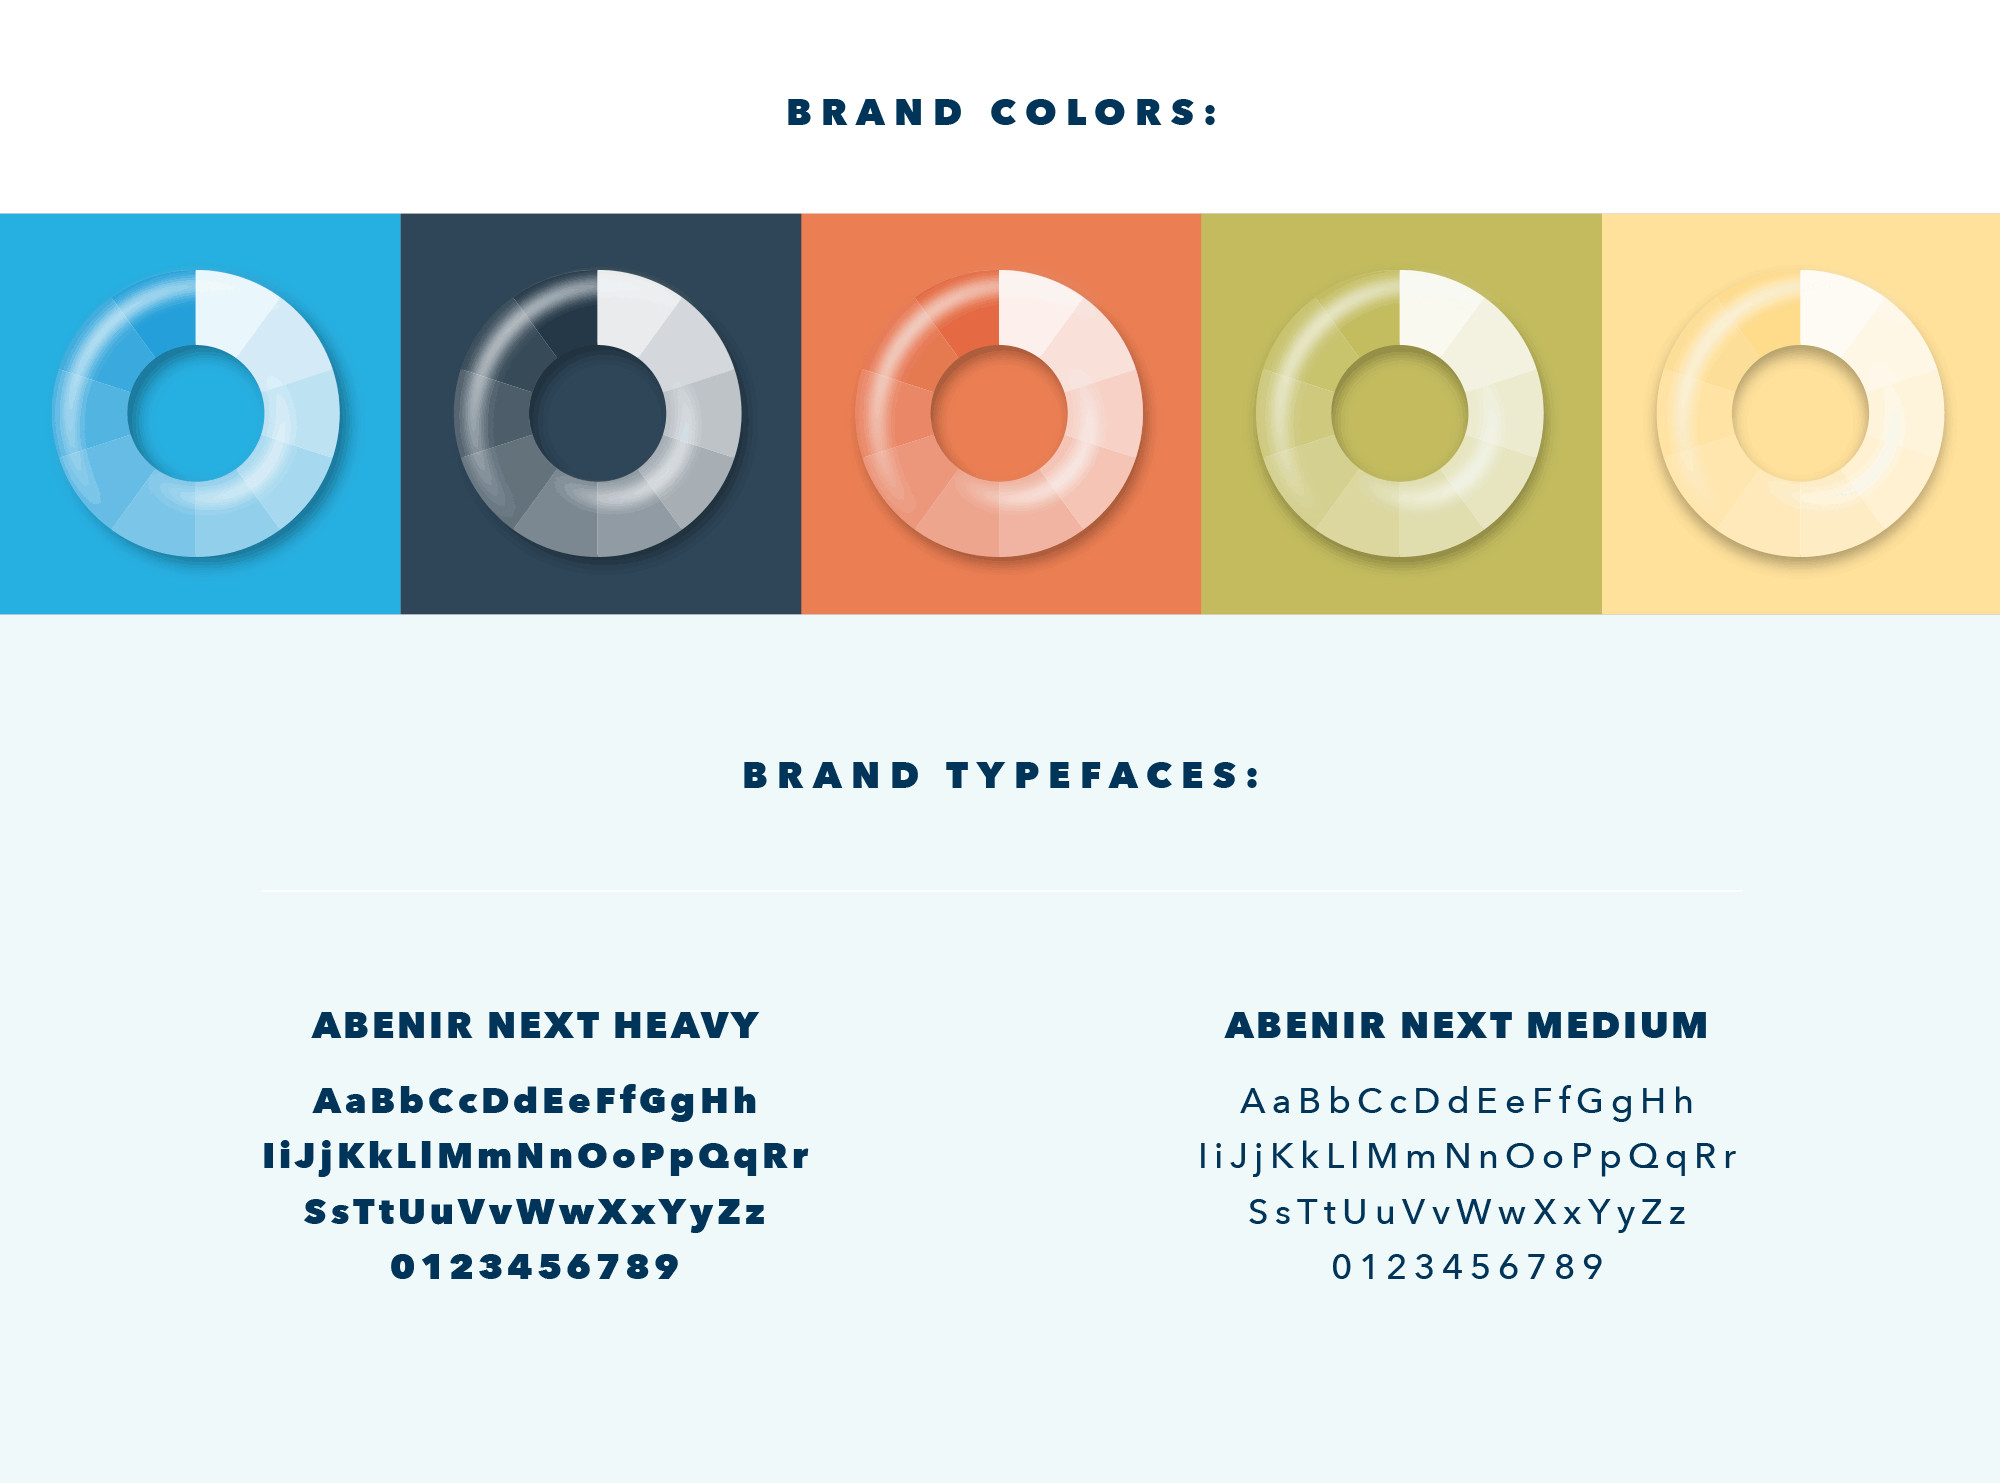 VO brand colors and fonts